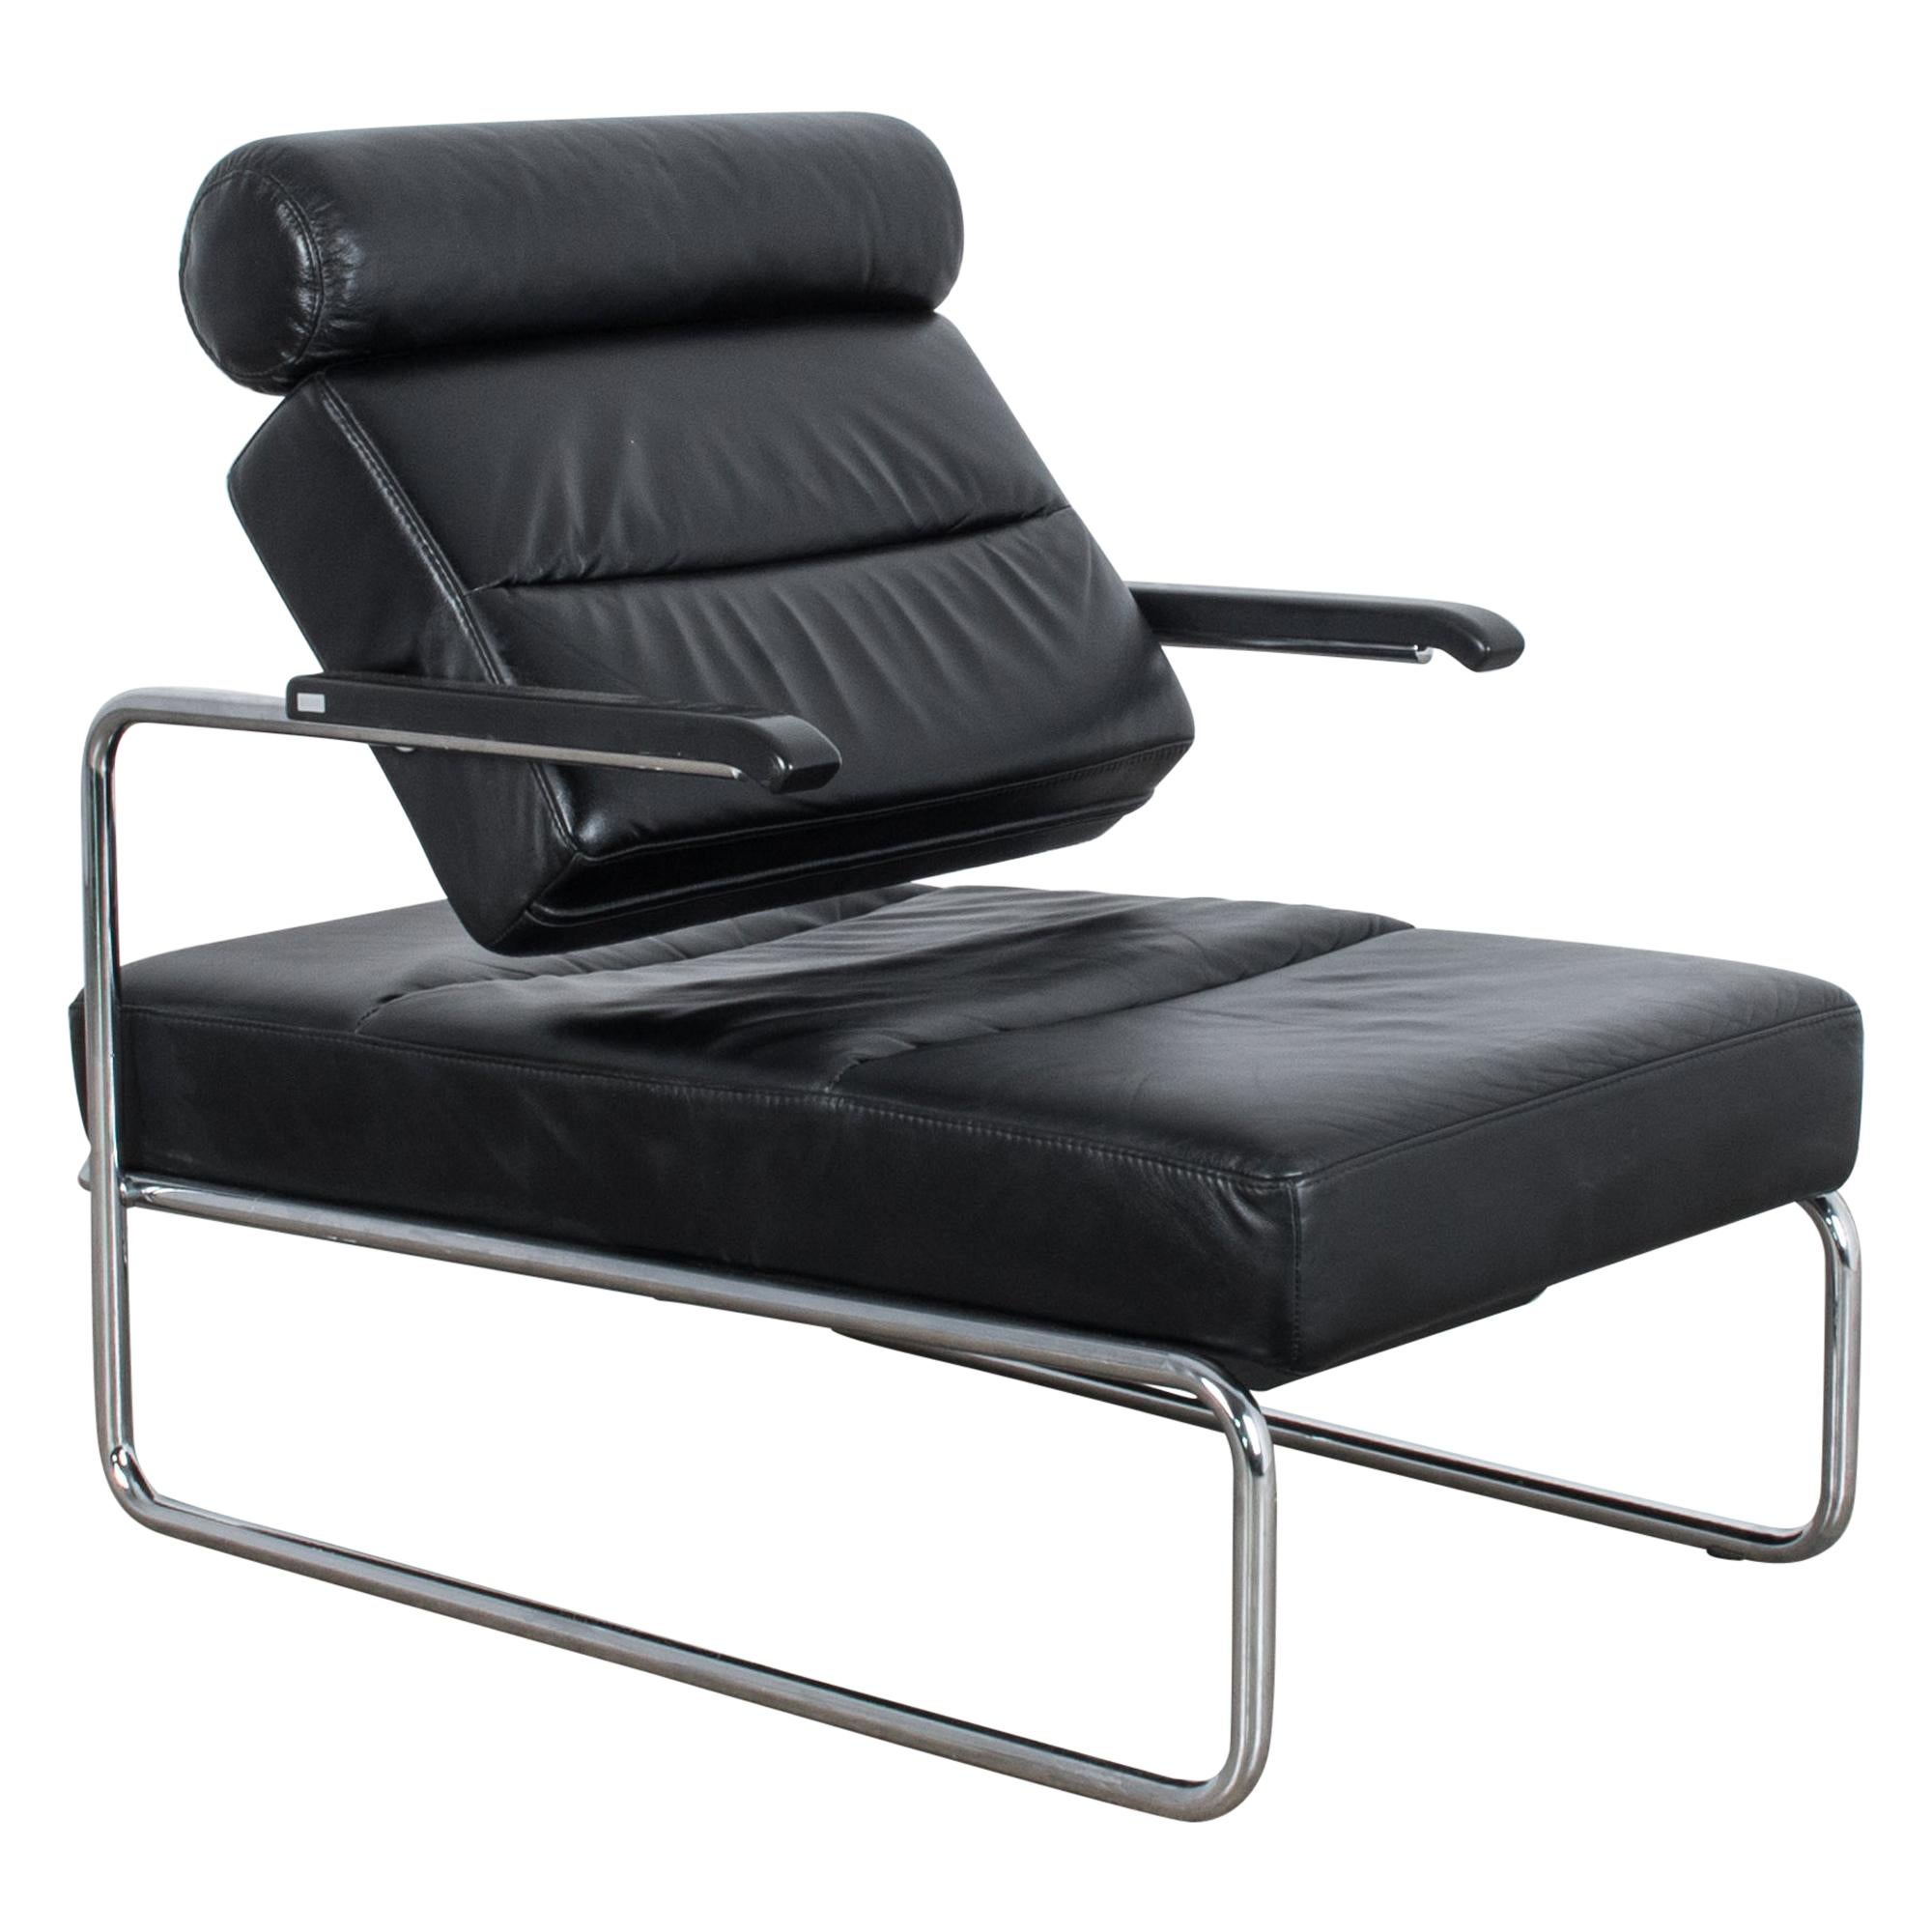 1970s Black Leather Thonet Adjustable Leather Lounge Chair